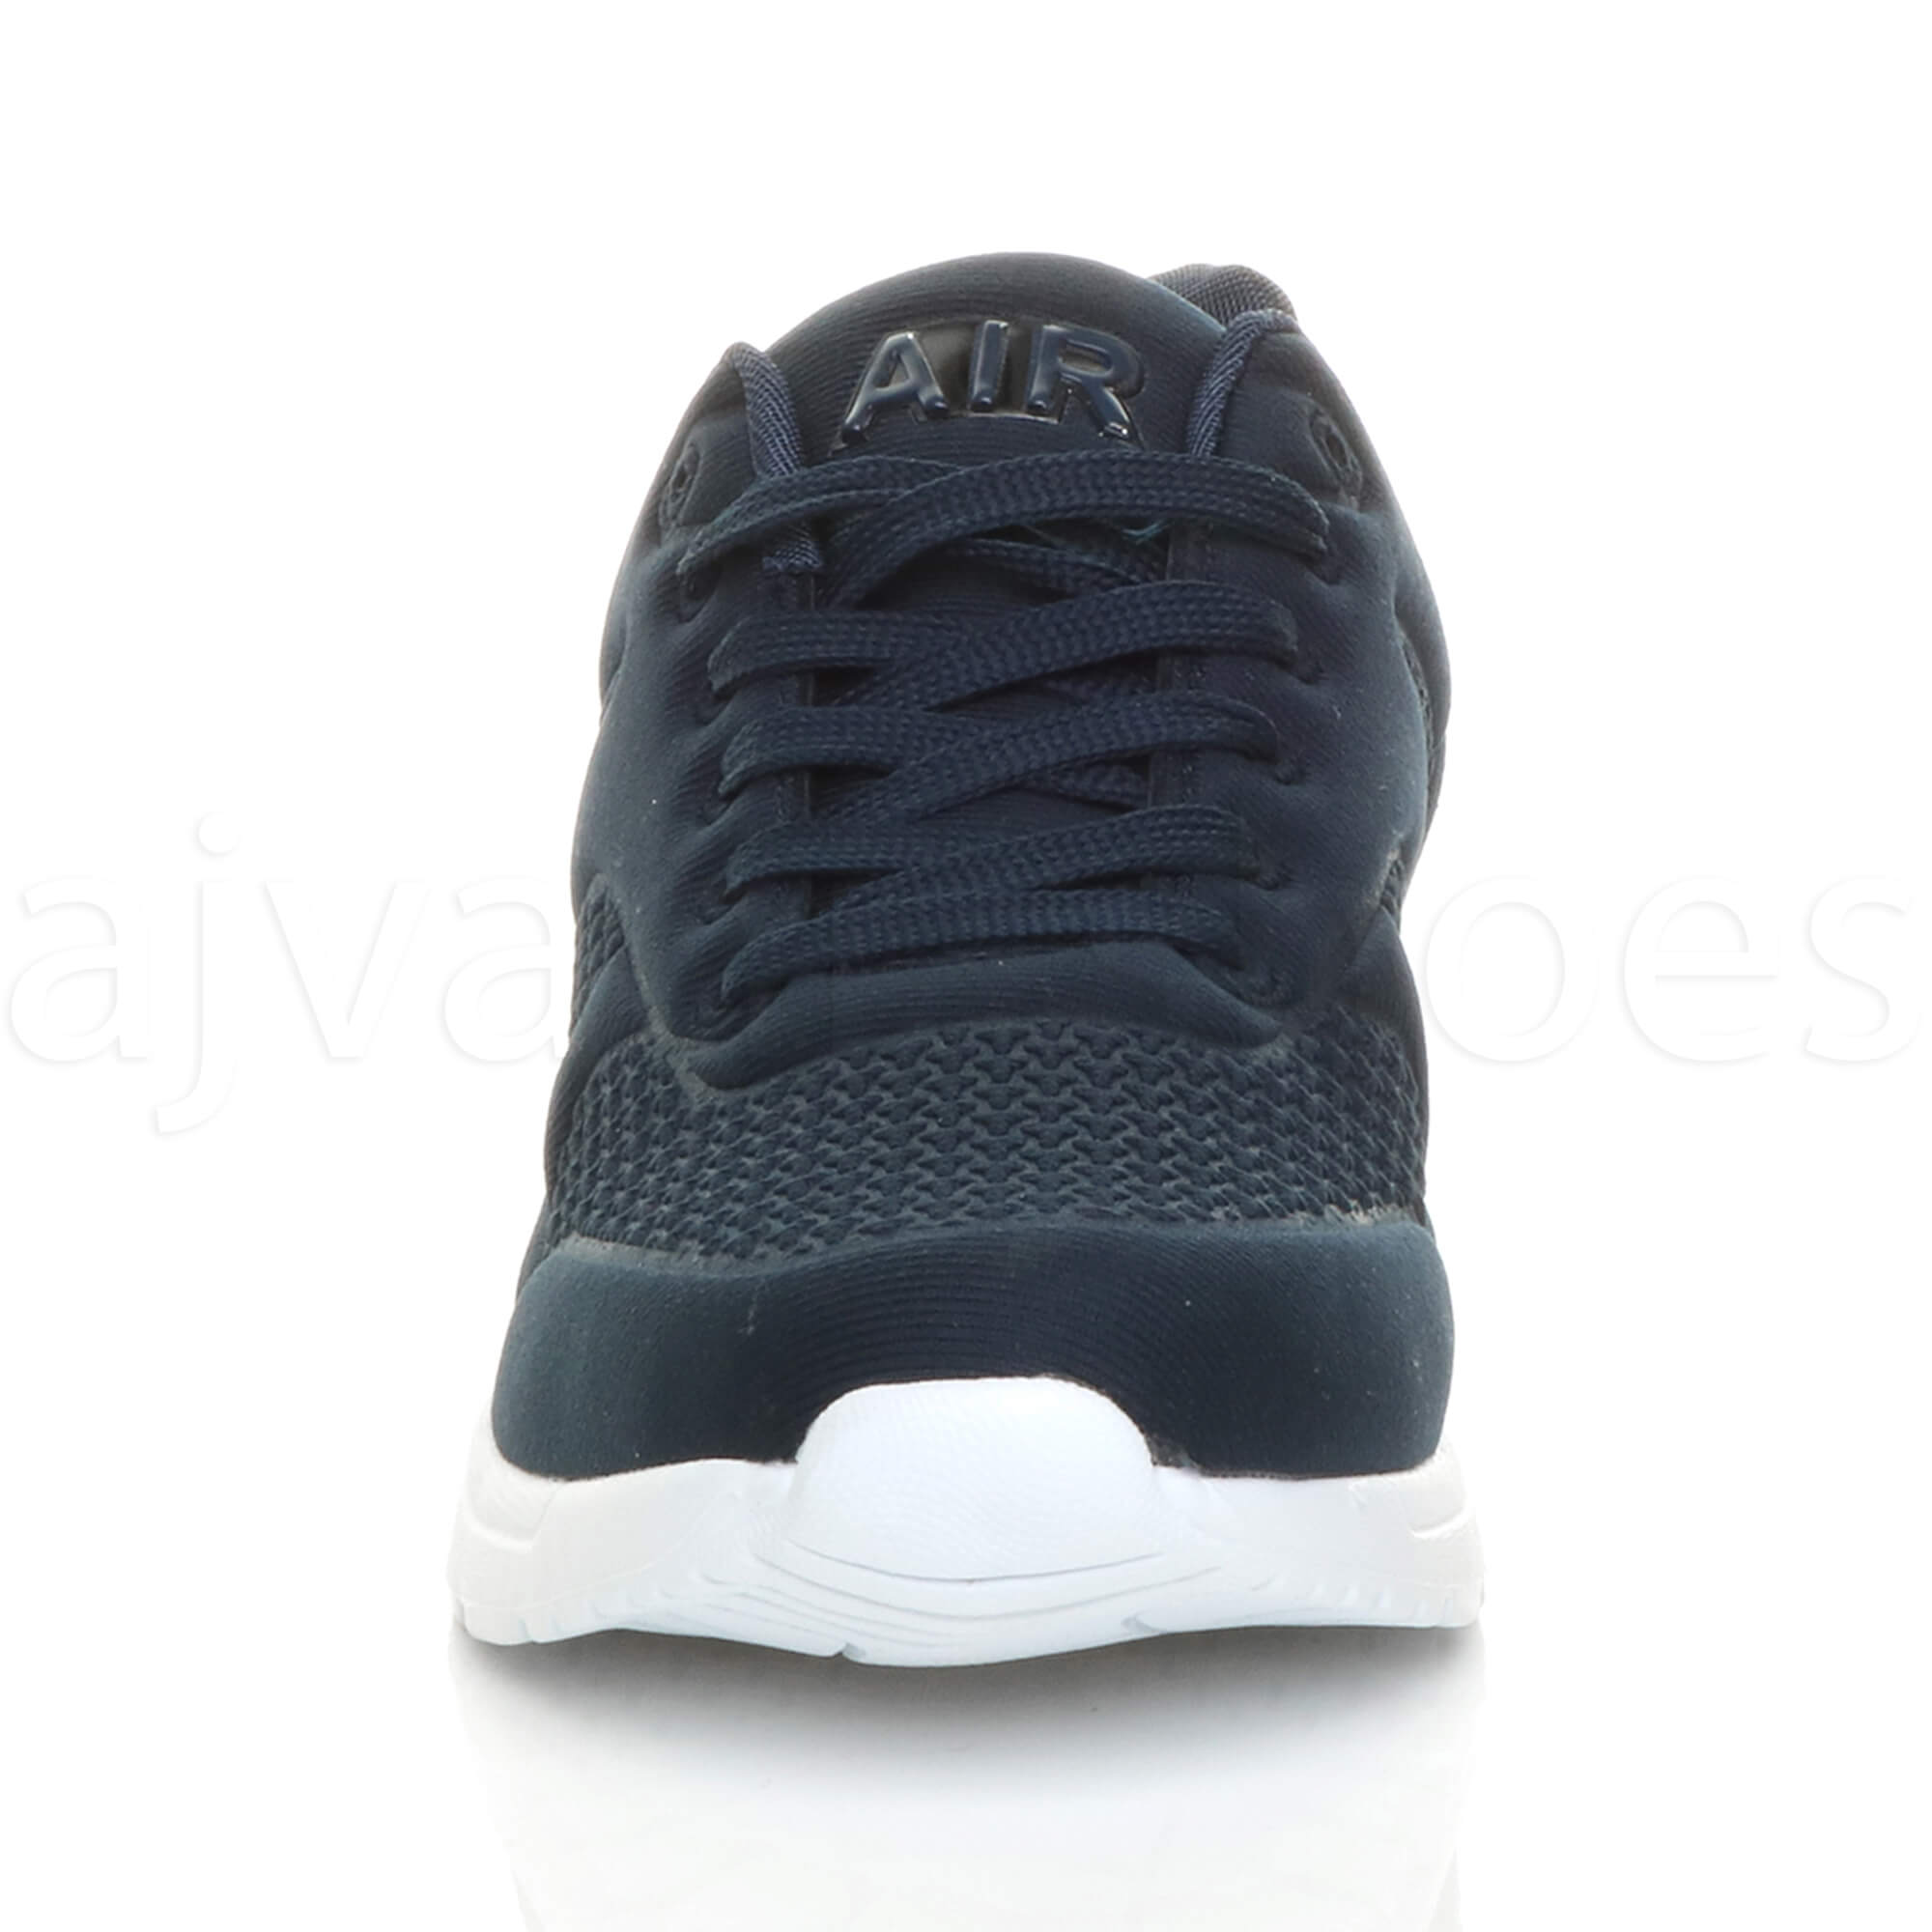 MENS-LACE-UP-FLEXIBLE-SOLE-RUNNING-SPORT-GYM-FITNESS-TRAINERS-SNEAKERS-SIZE miniatuur 15